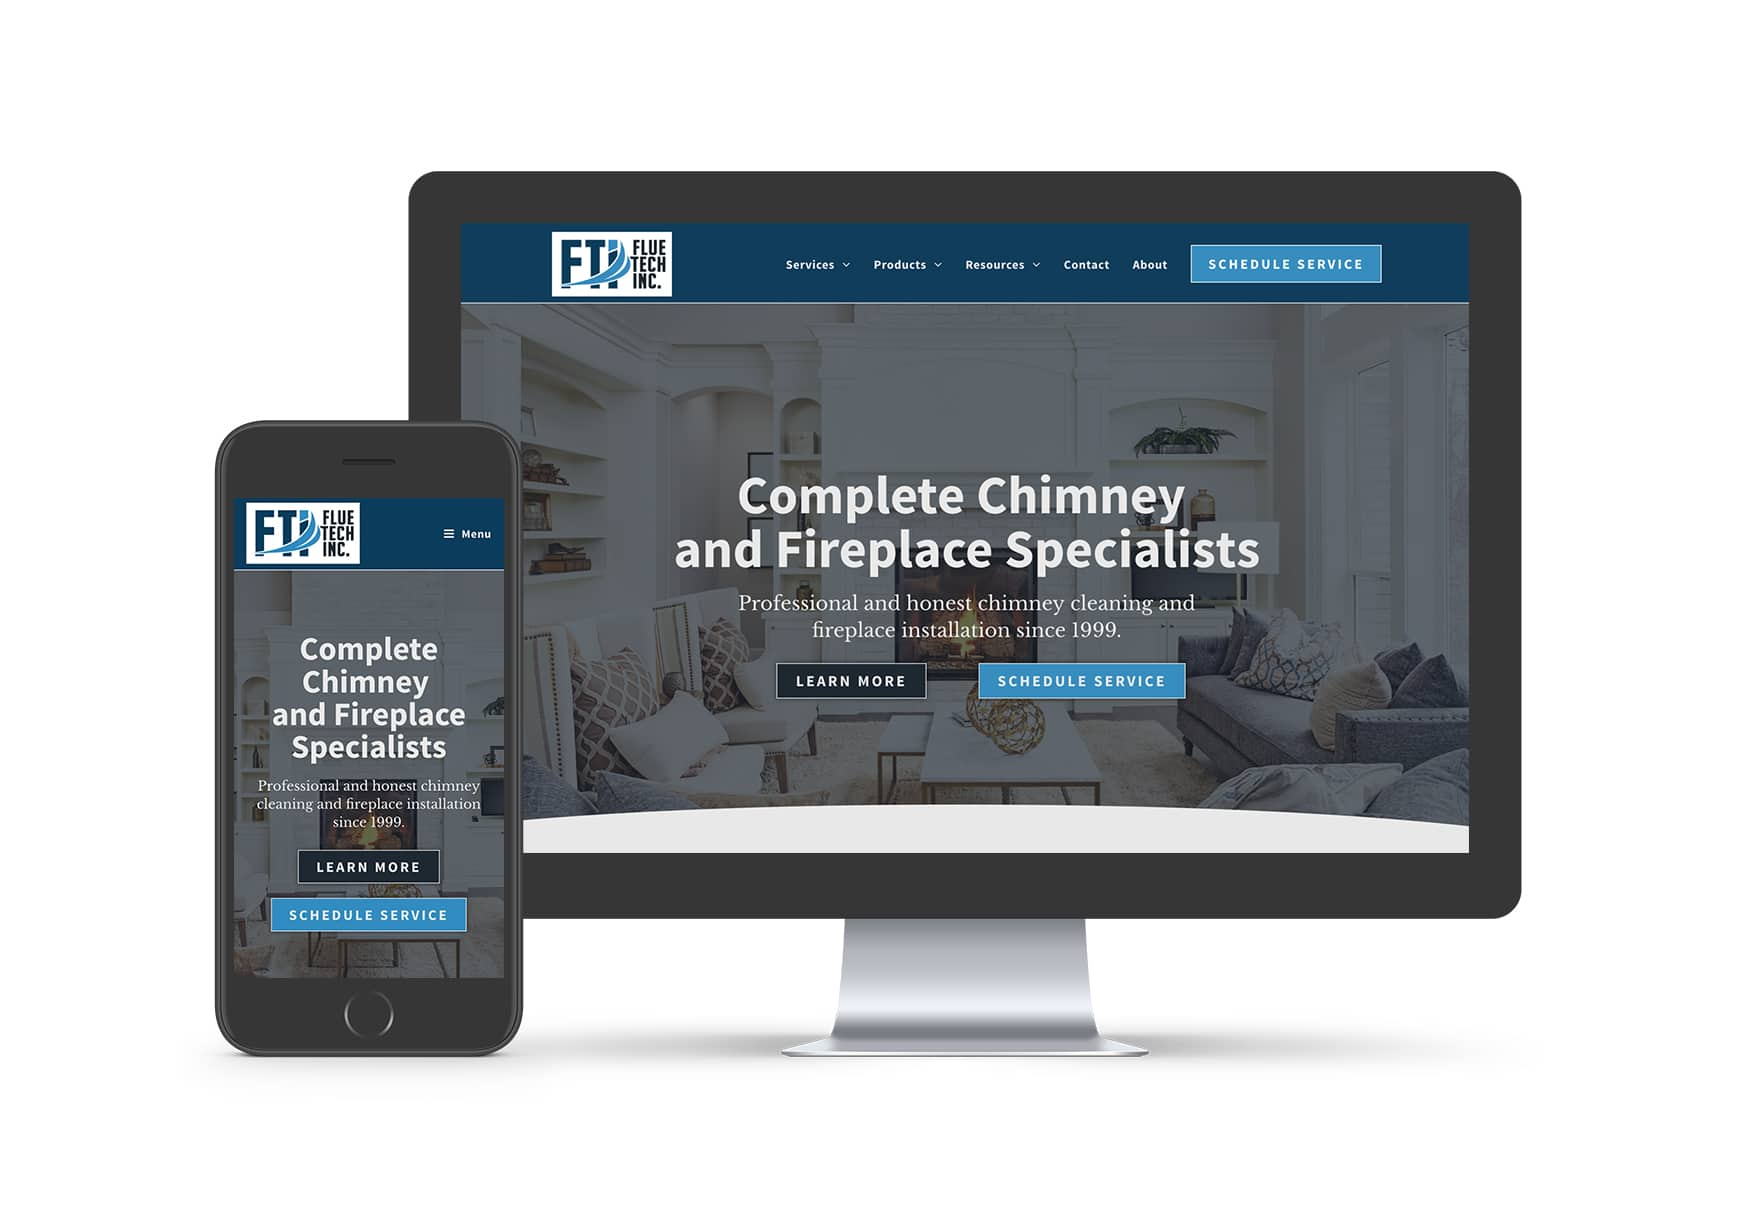 Website Design - Flue Tech Inc.